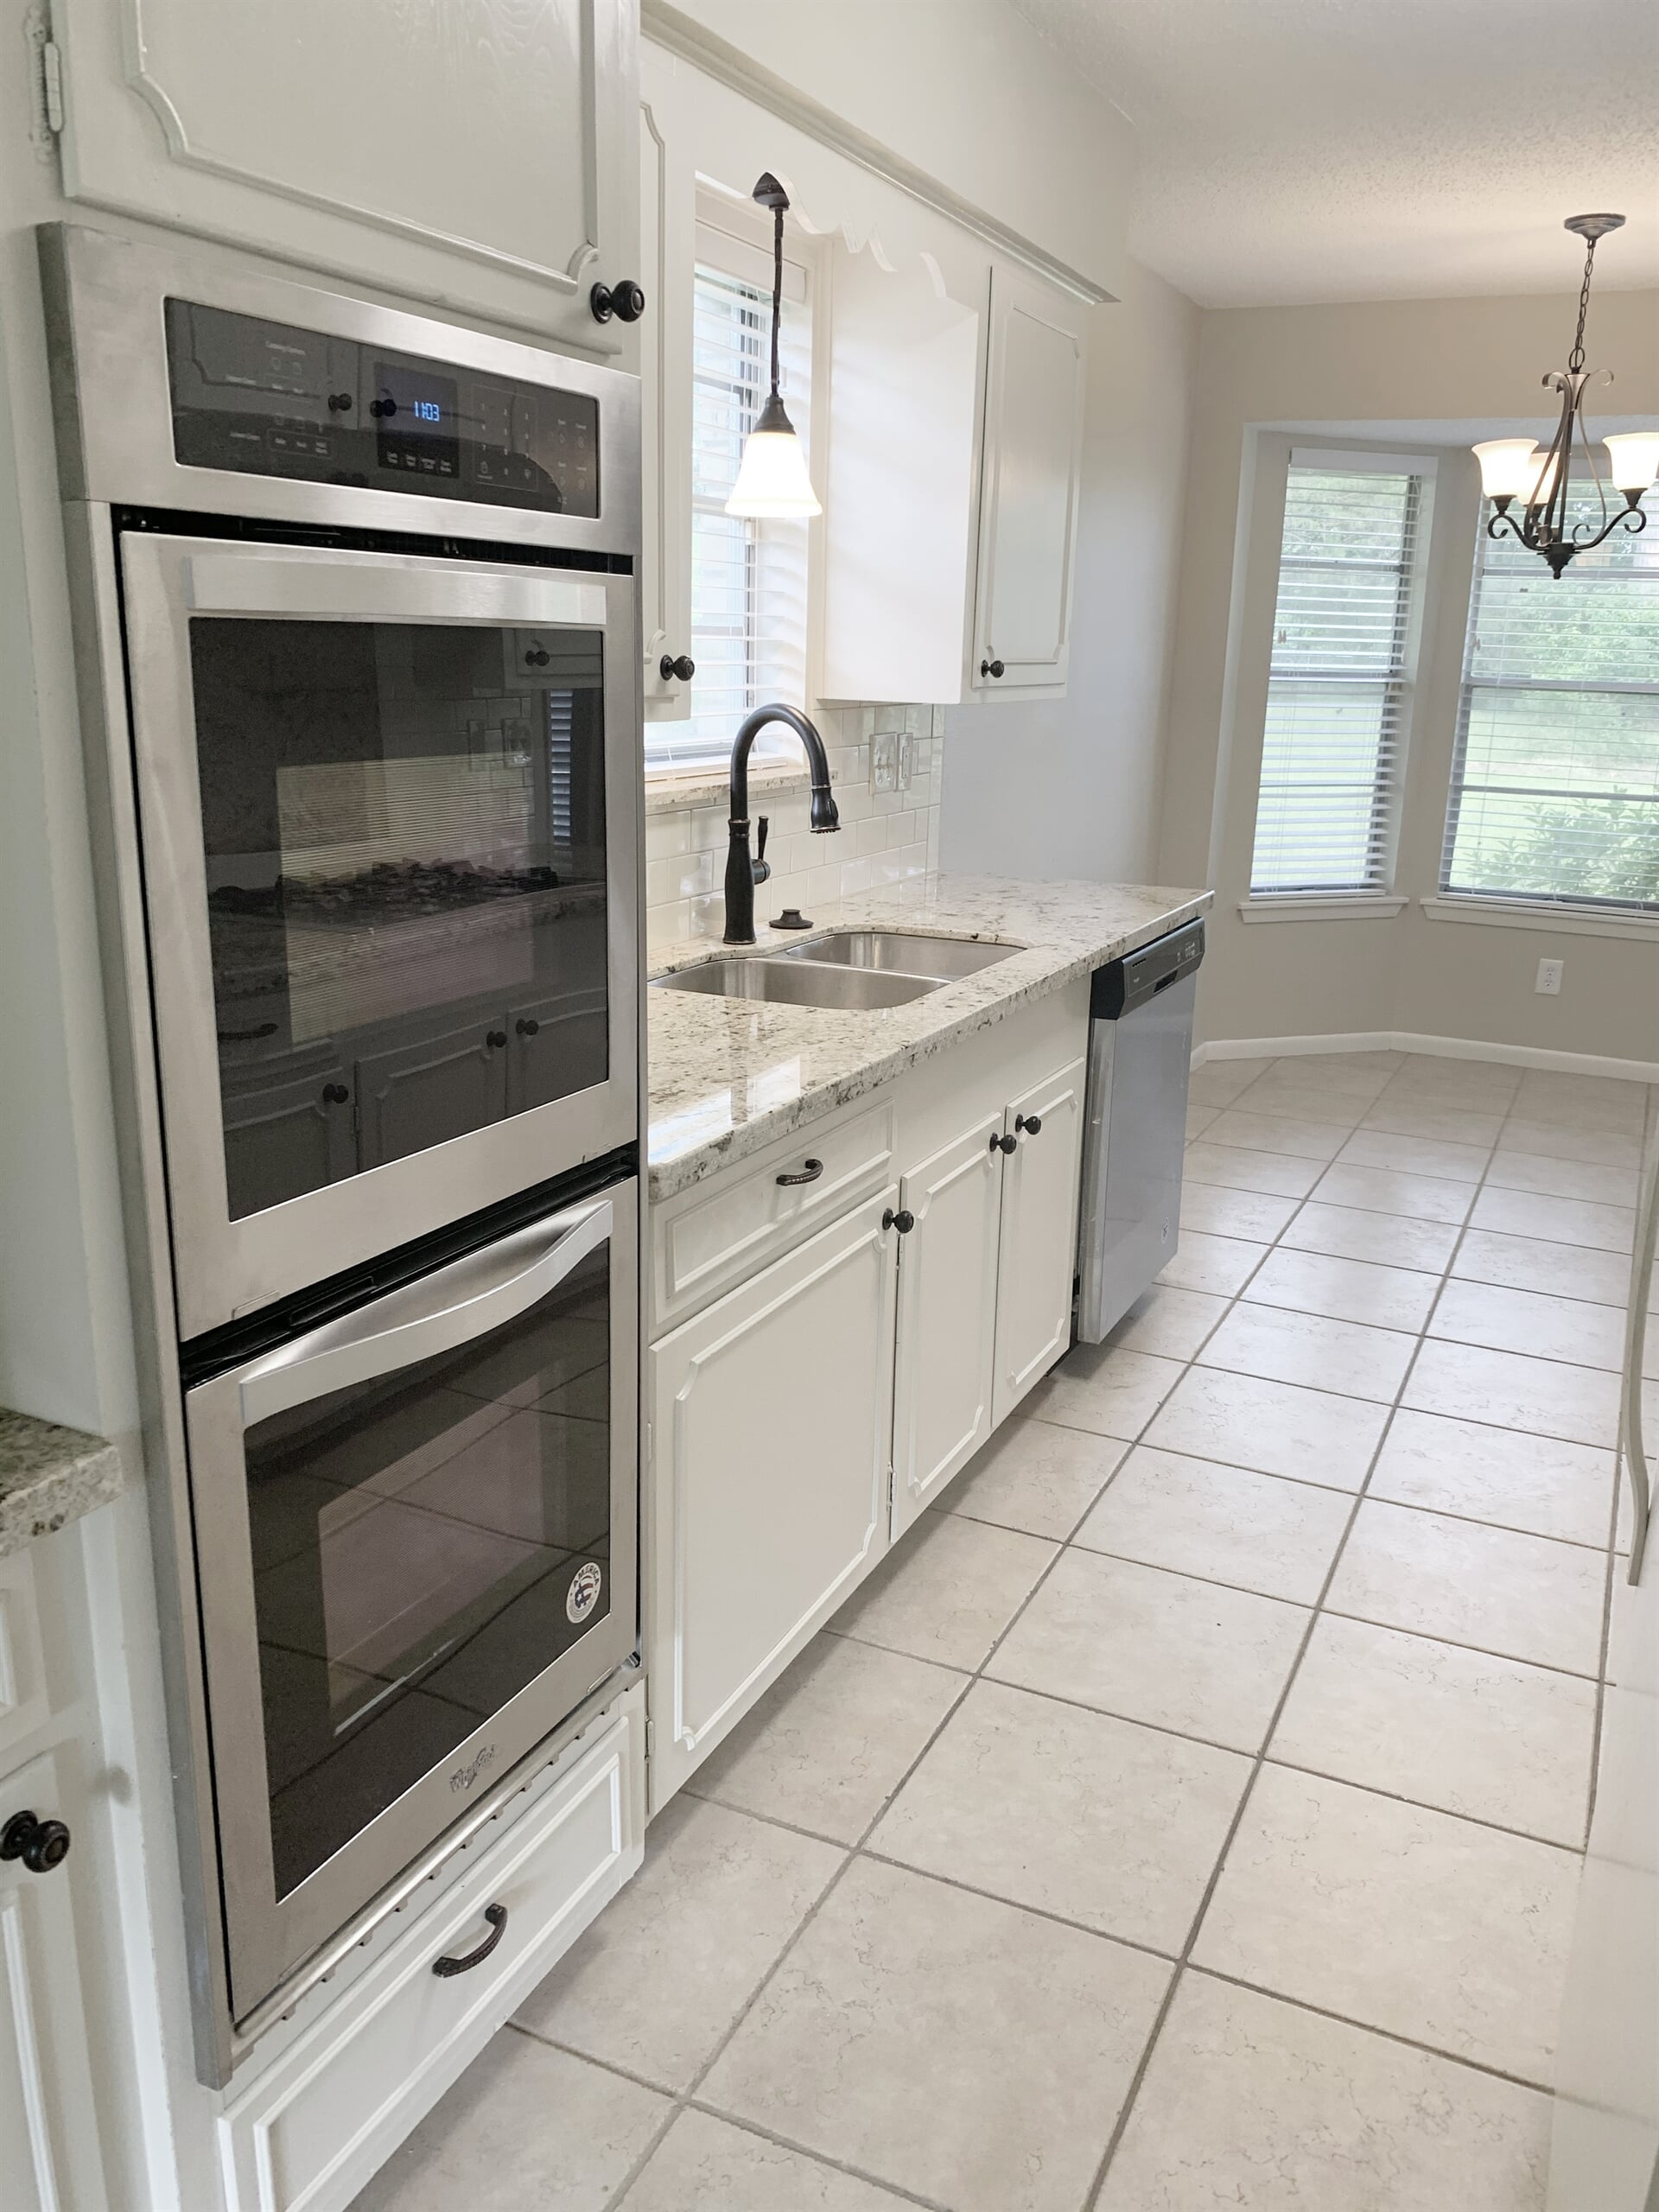 Kitchen renovation in Port Arthur, TX from Odile's Fine Flooring & Design